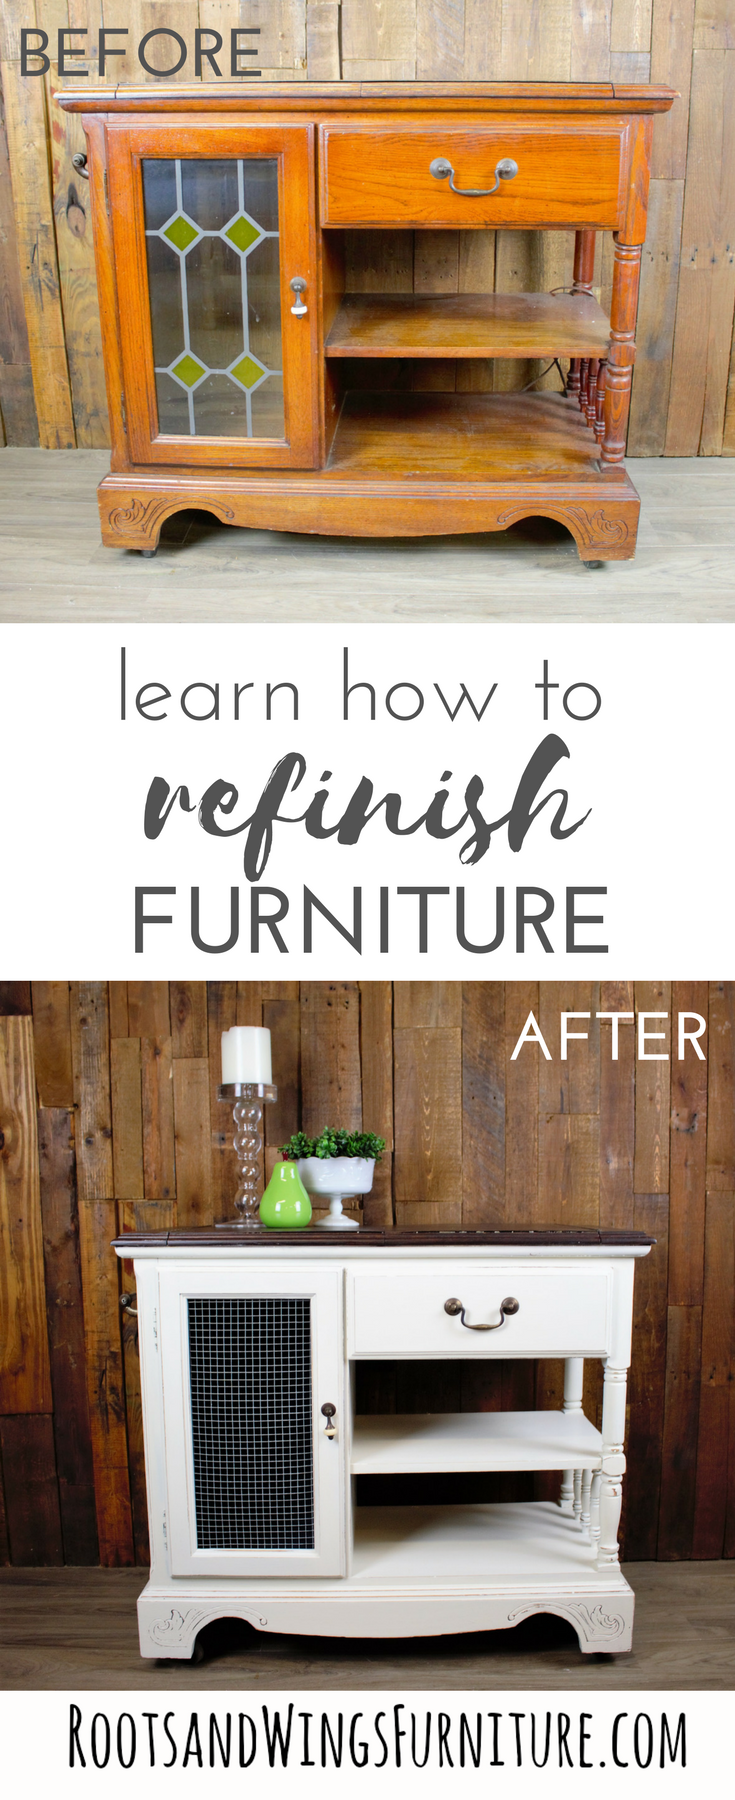 Turn That Unused Room Of The House Into This: Let's Turn That Furniture Piece Into Something You LOVE